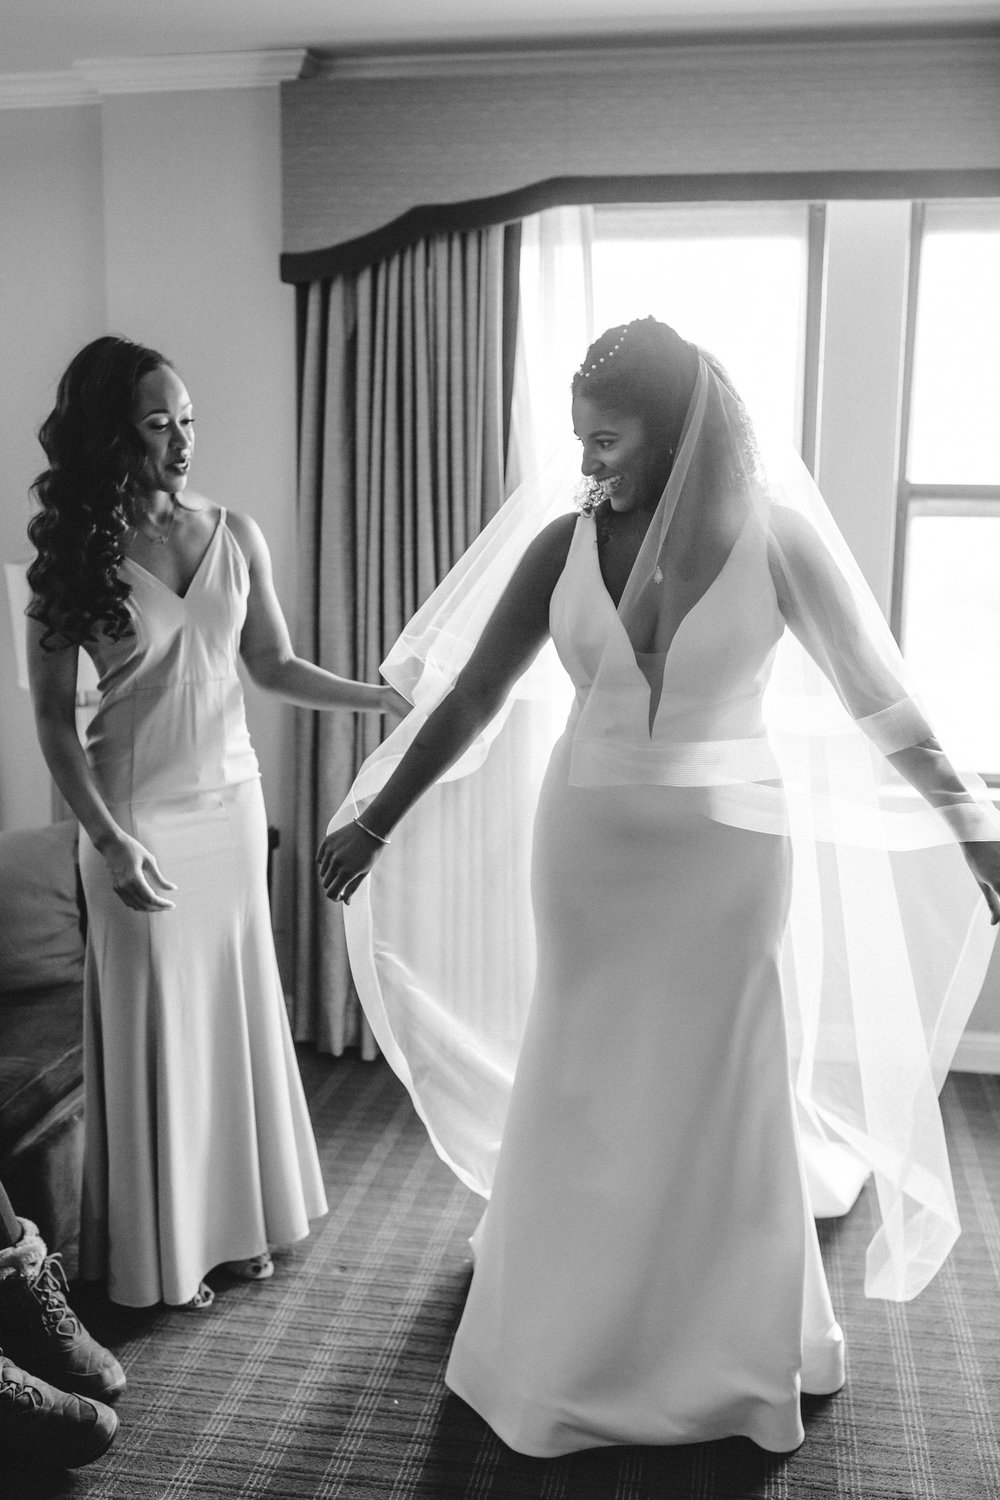 Getting ready photos, Black and white wedding photography, real wedding, st louis wedding photographer,